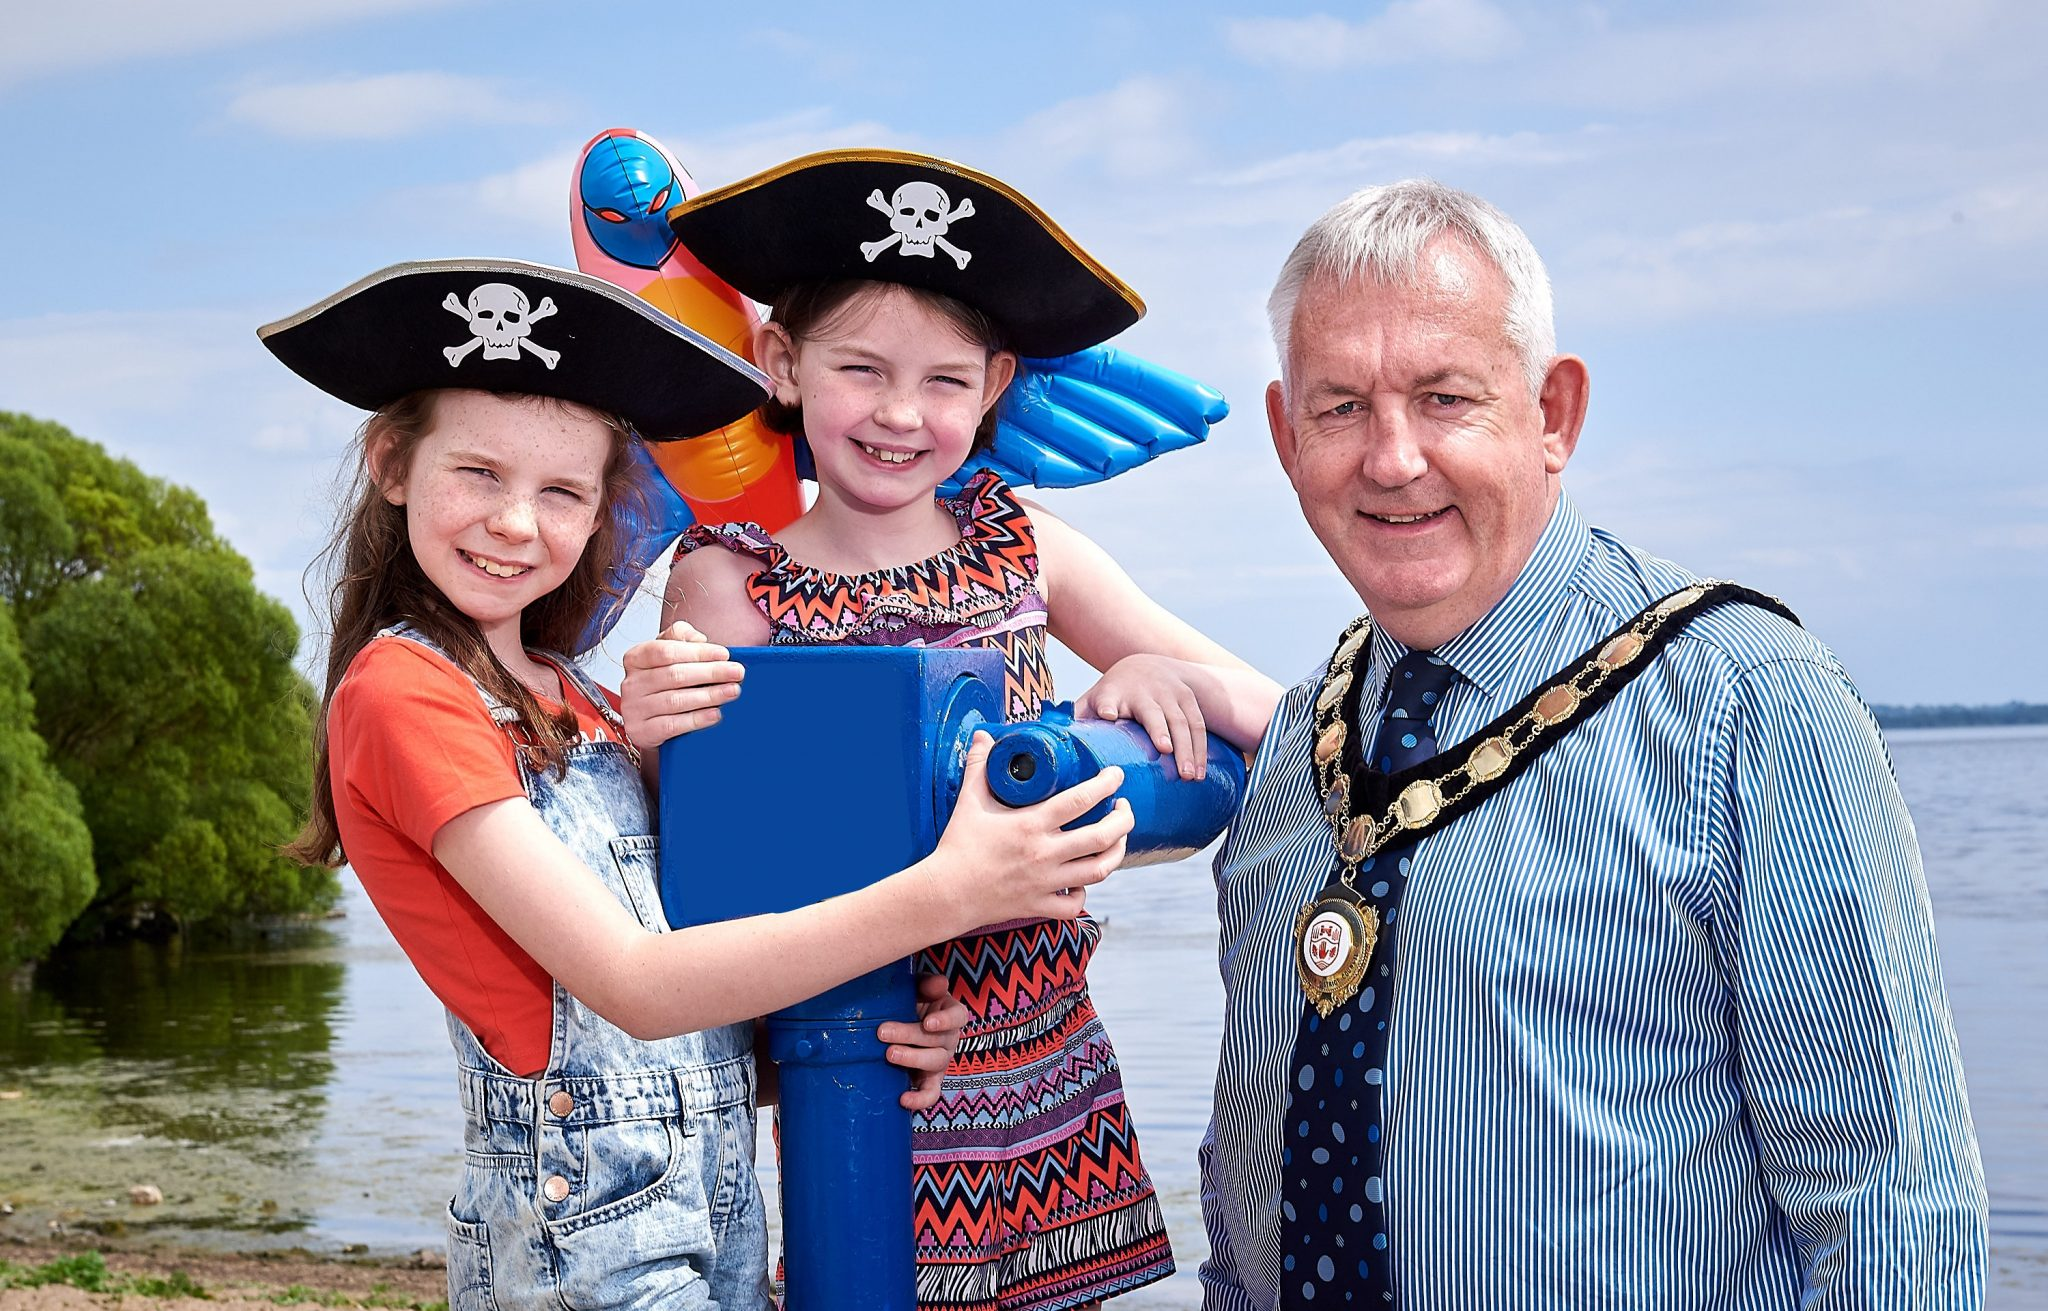 Chair of Mid Ulster District Council, Councillor Sean McPeake is pictured with some excited pirates ahead of this year's Lumarina which takes place at Ballyronan Marina on Friday 17th and Saturday 18th August